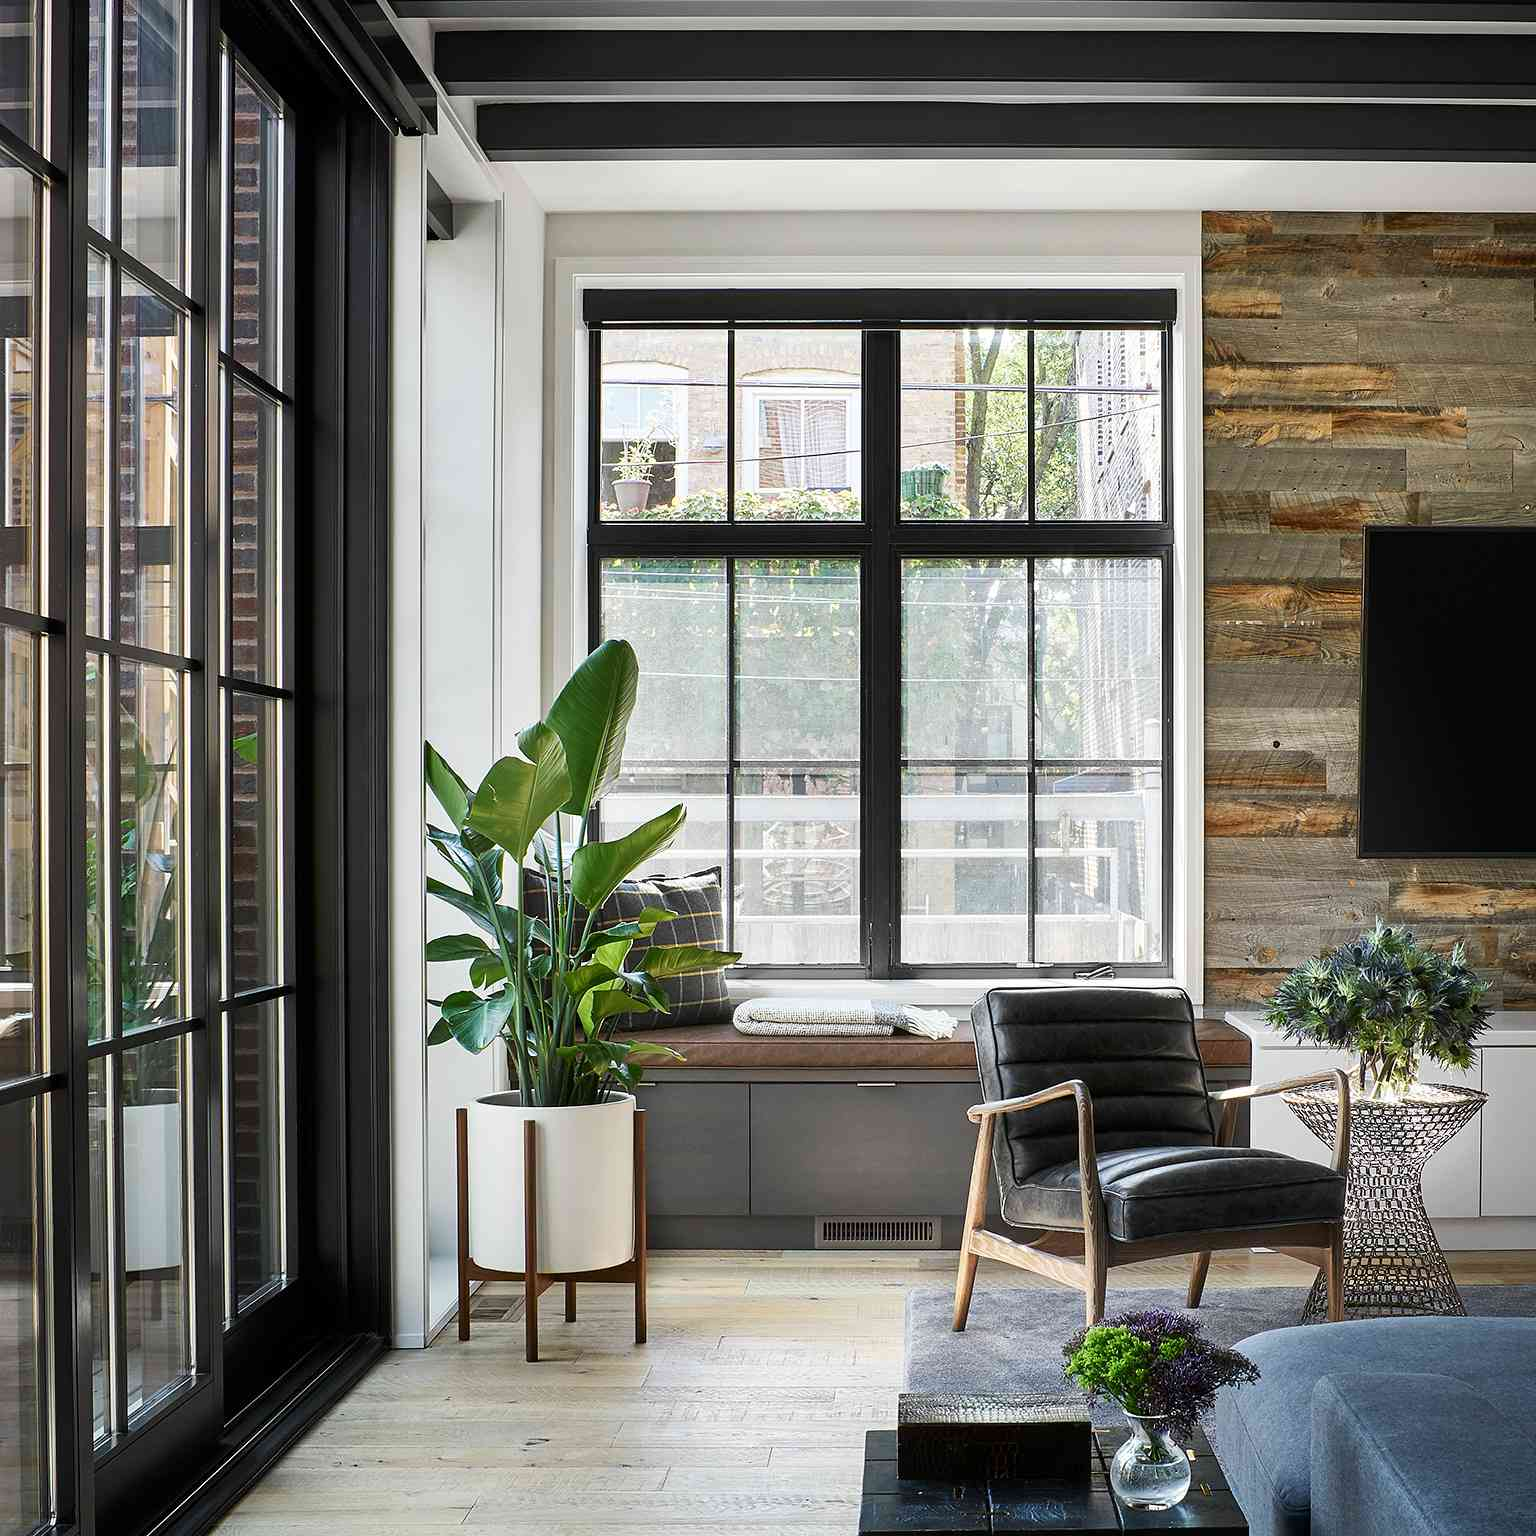 Living room with rustic reclaimed wood accent wall